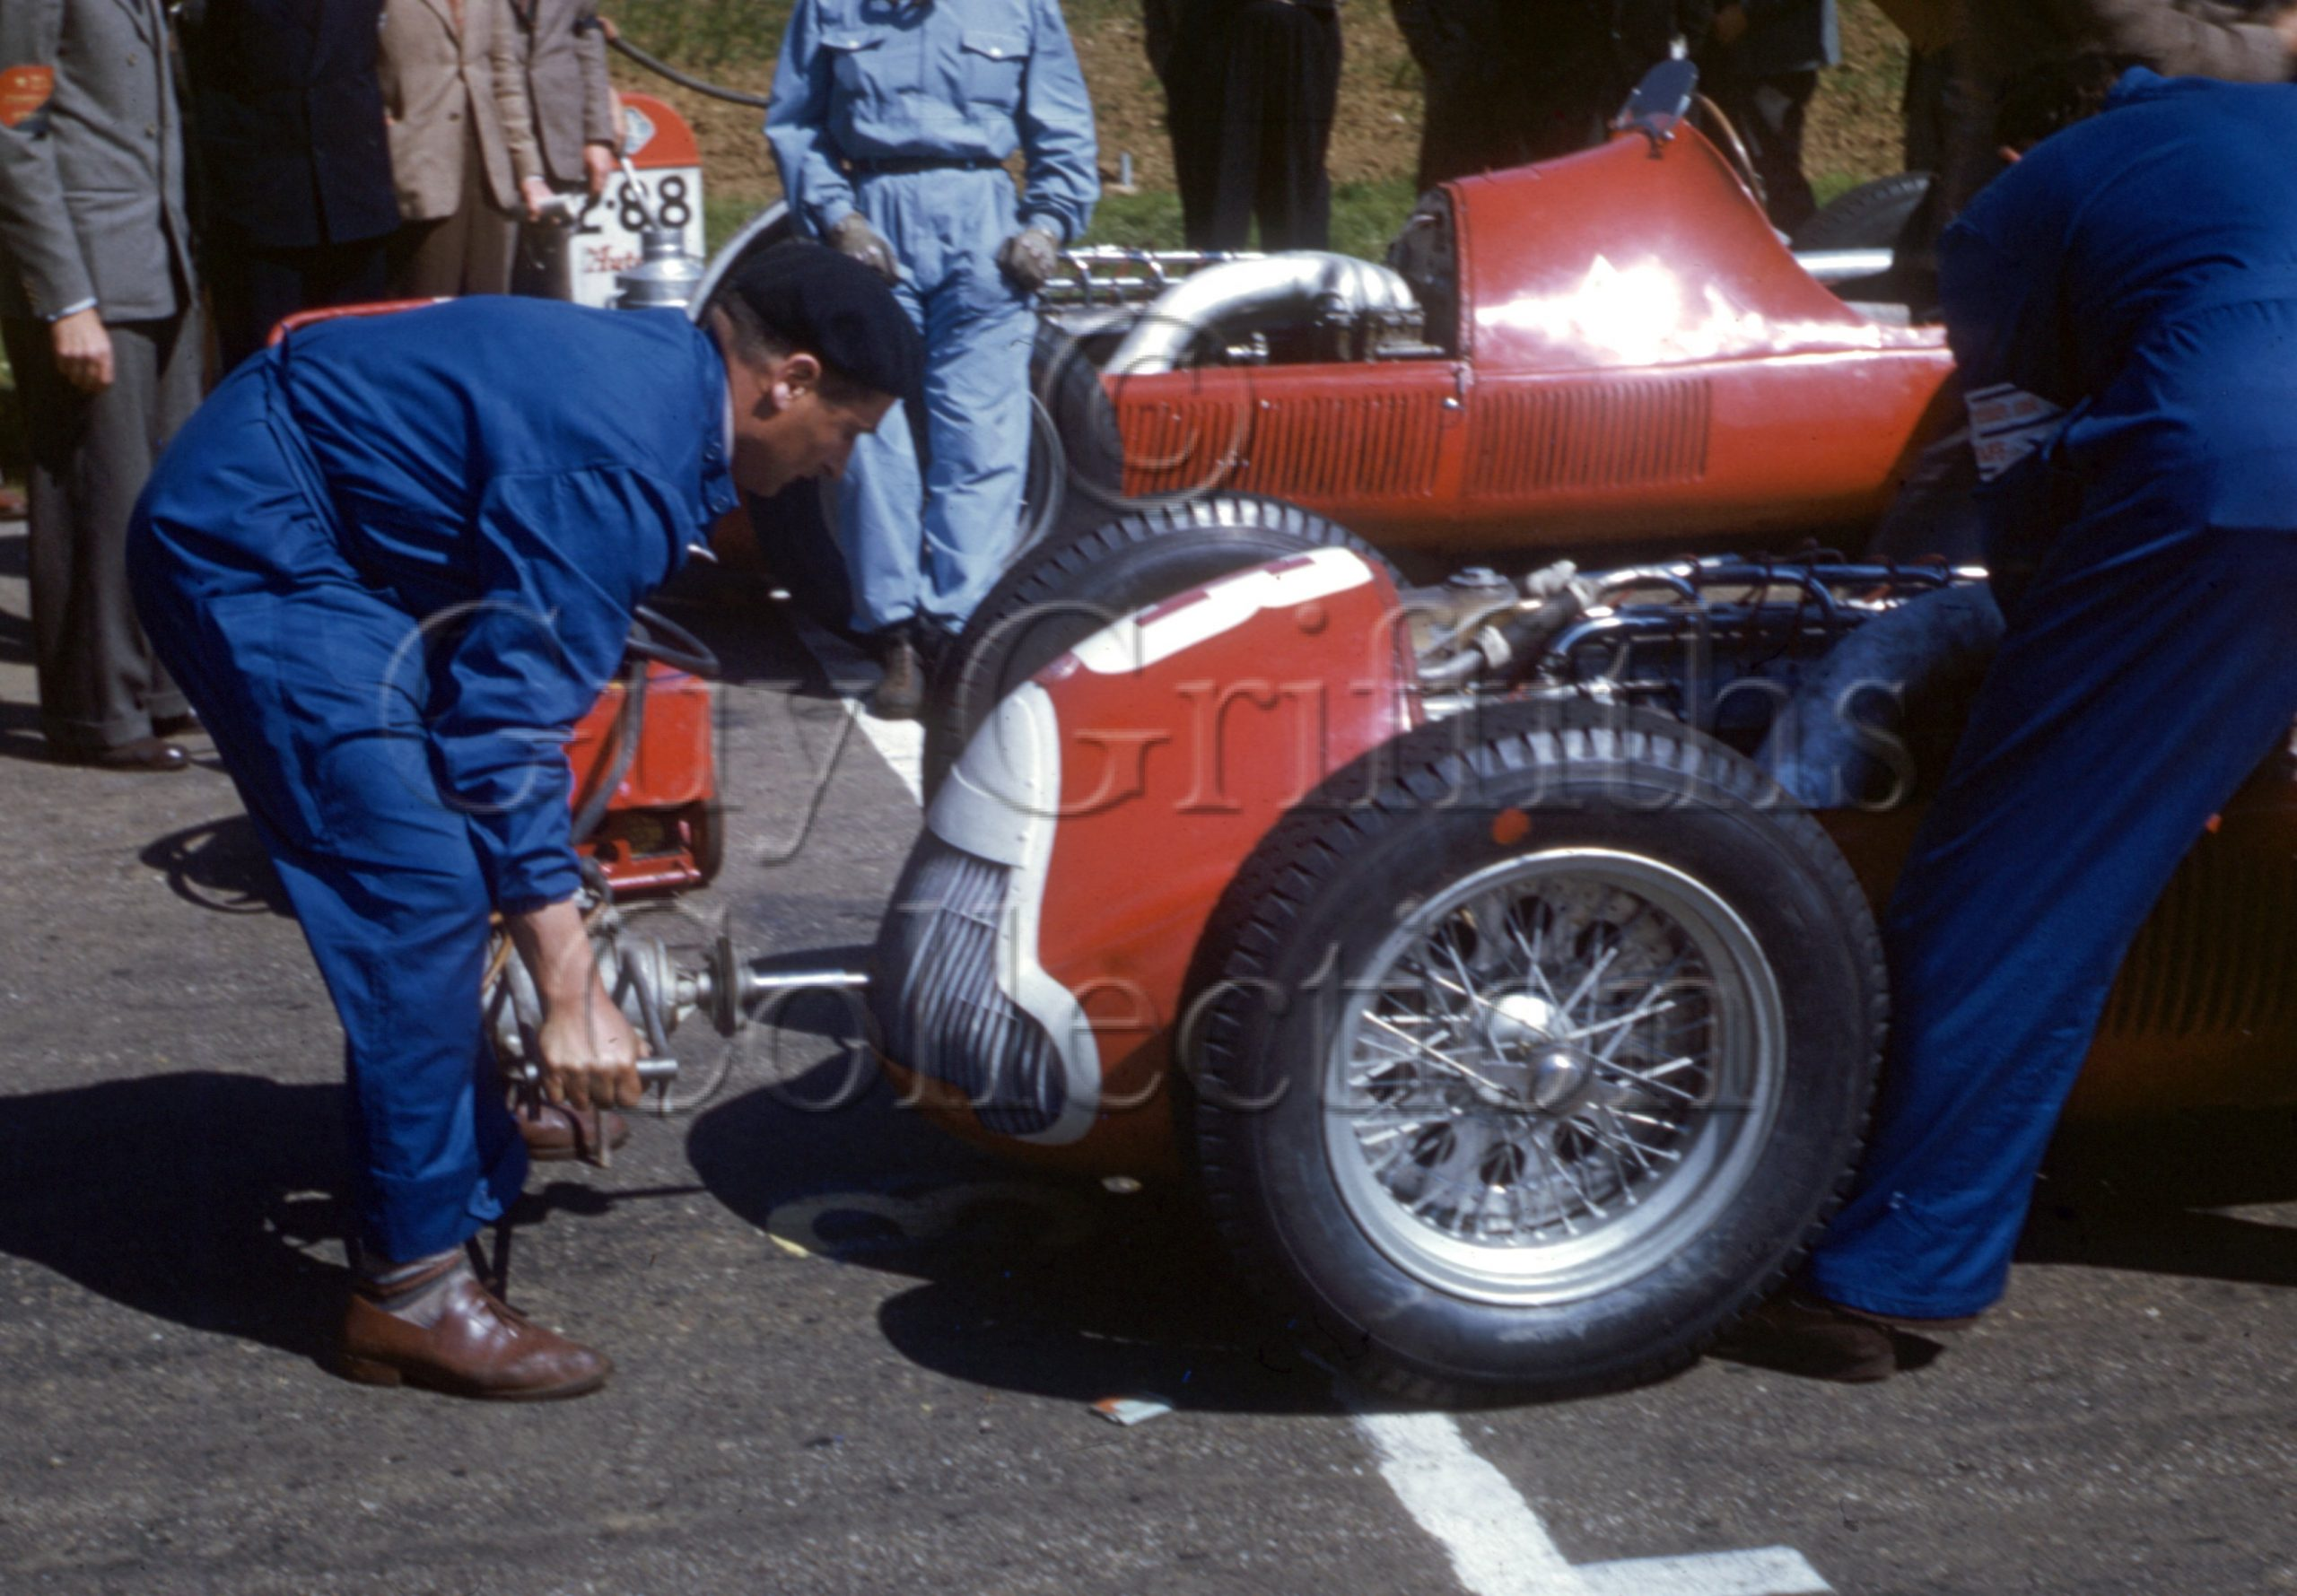 C-3-5–Alfa-Romeo-158–Silverstone–13-05-1950.jpg - Guy Griffiths Collection